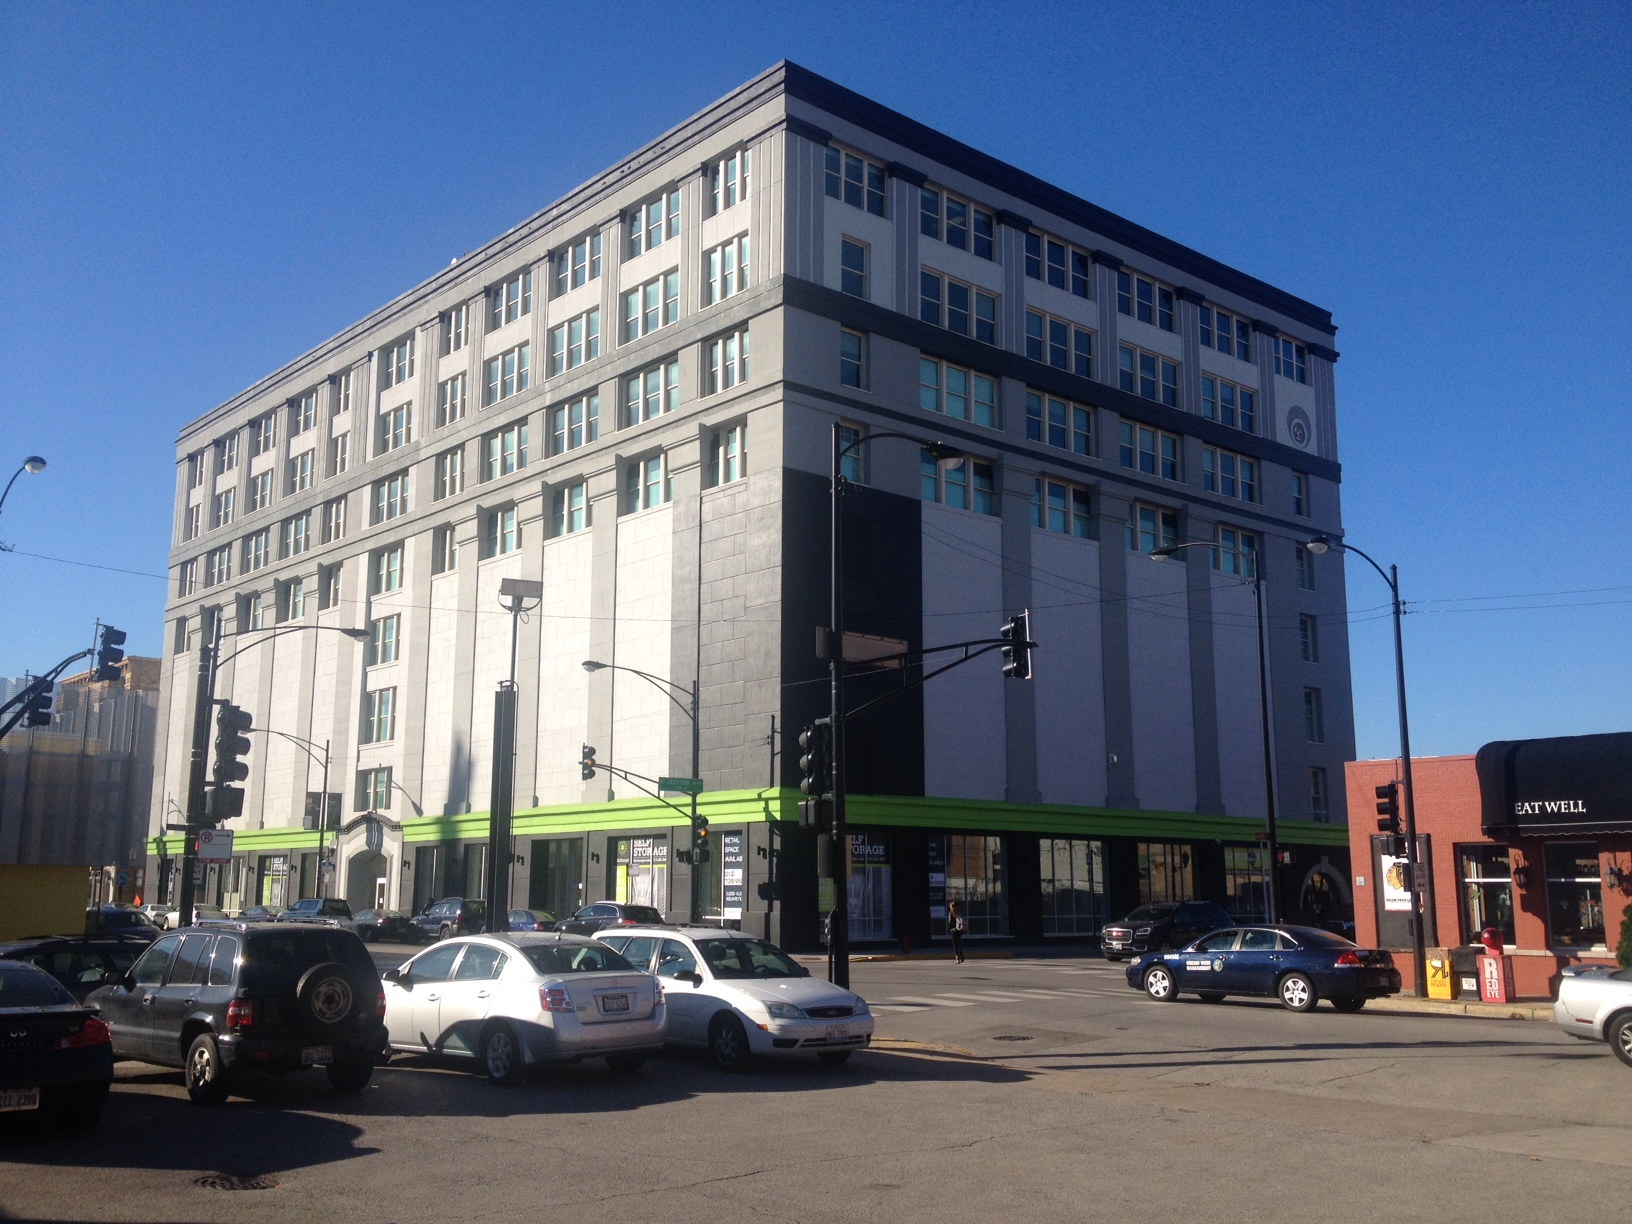 LifeStorage Opens West Loop Location In Historic Chicago Area